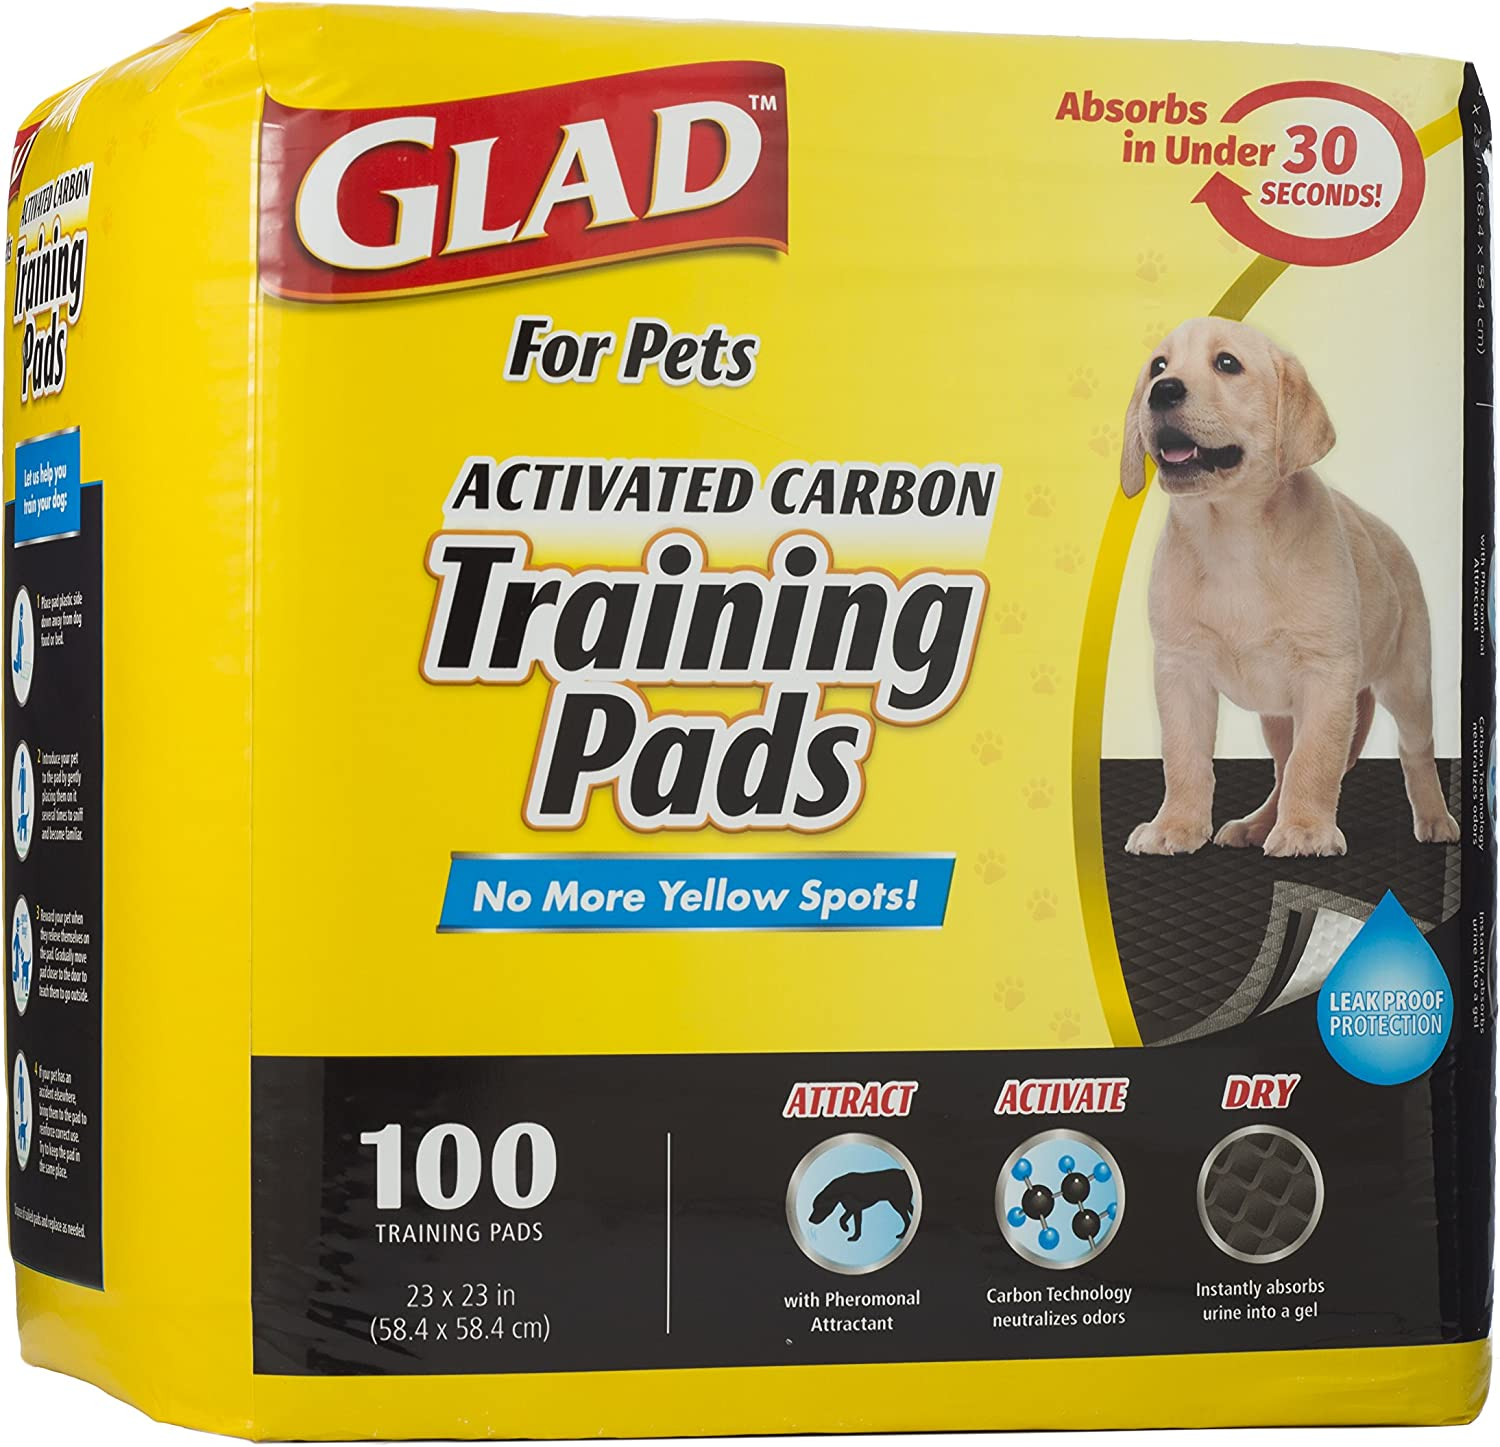 Glad for Pets Activated Carbon Puppy Training Pads